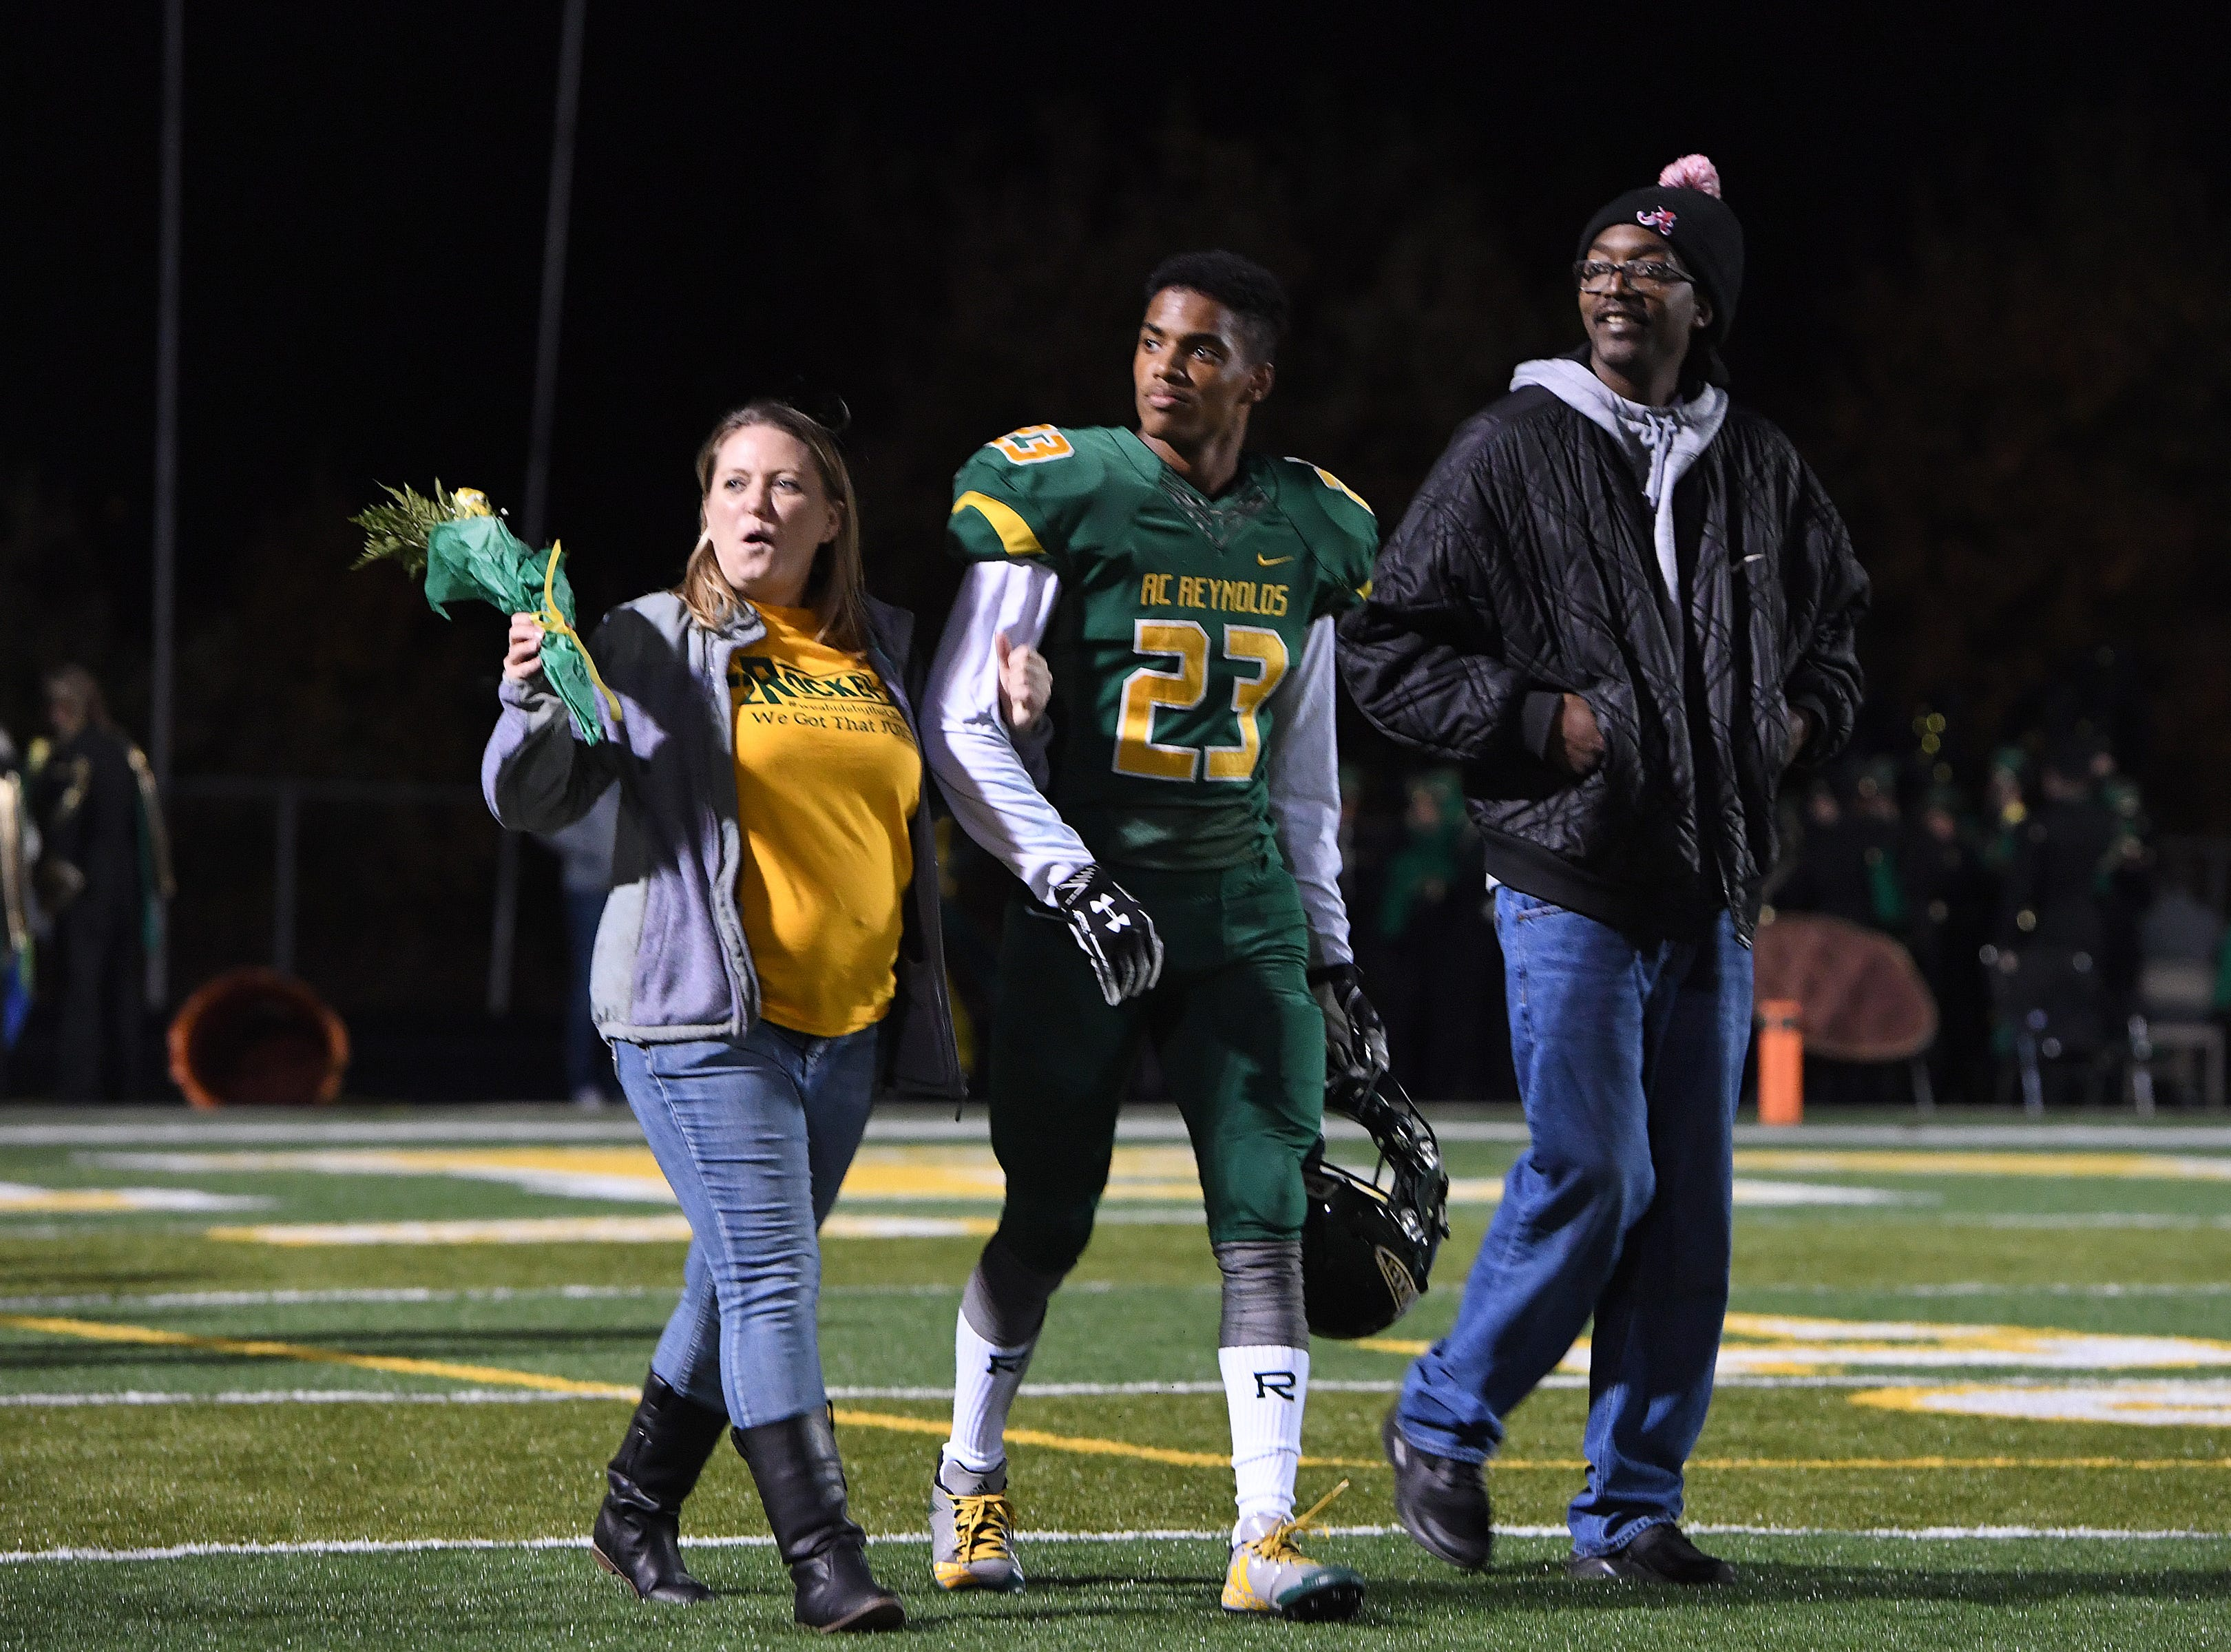 Senior football players, cheerleaders and band members were honored during the final home game of the regular season at Reynolds High School on Nov. 2, 2018.